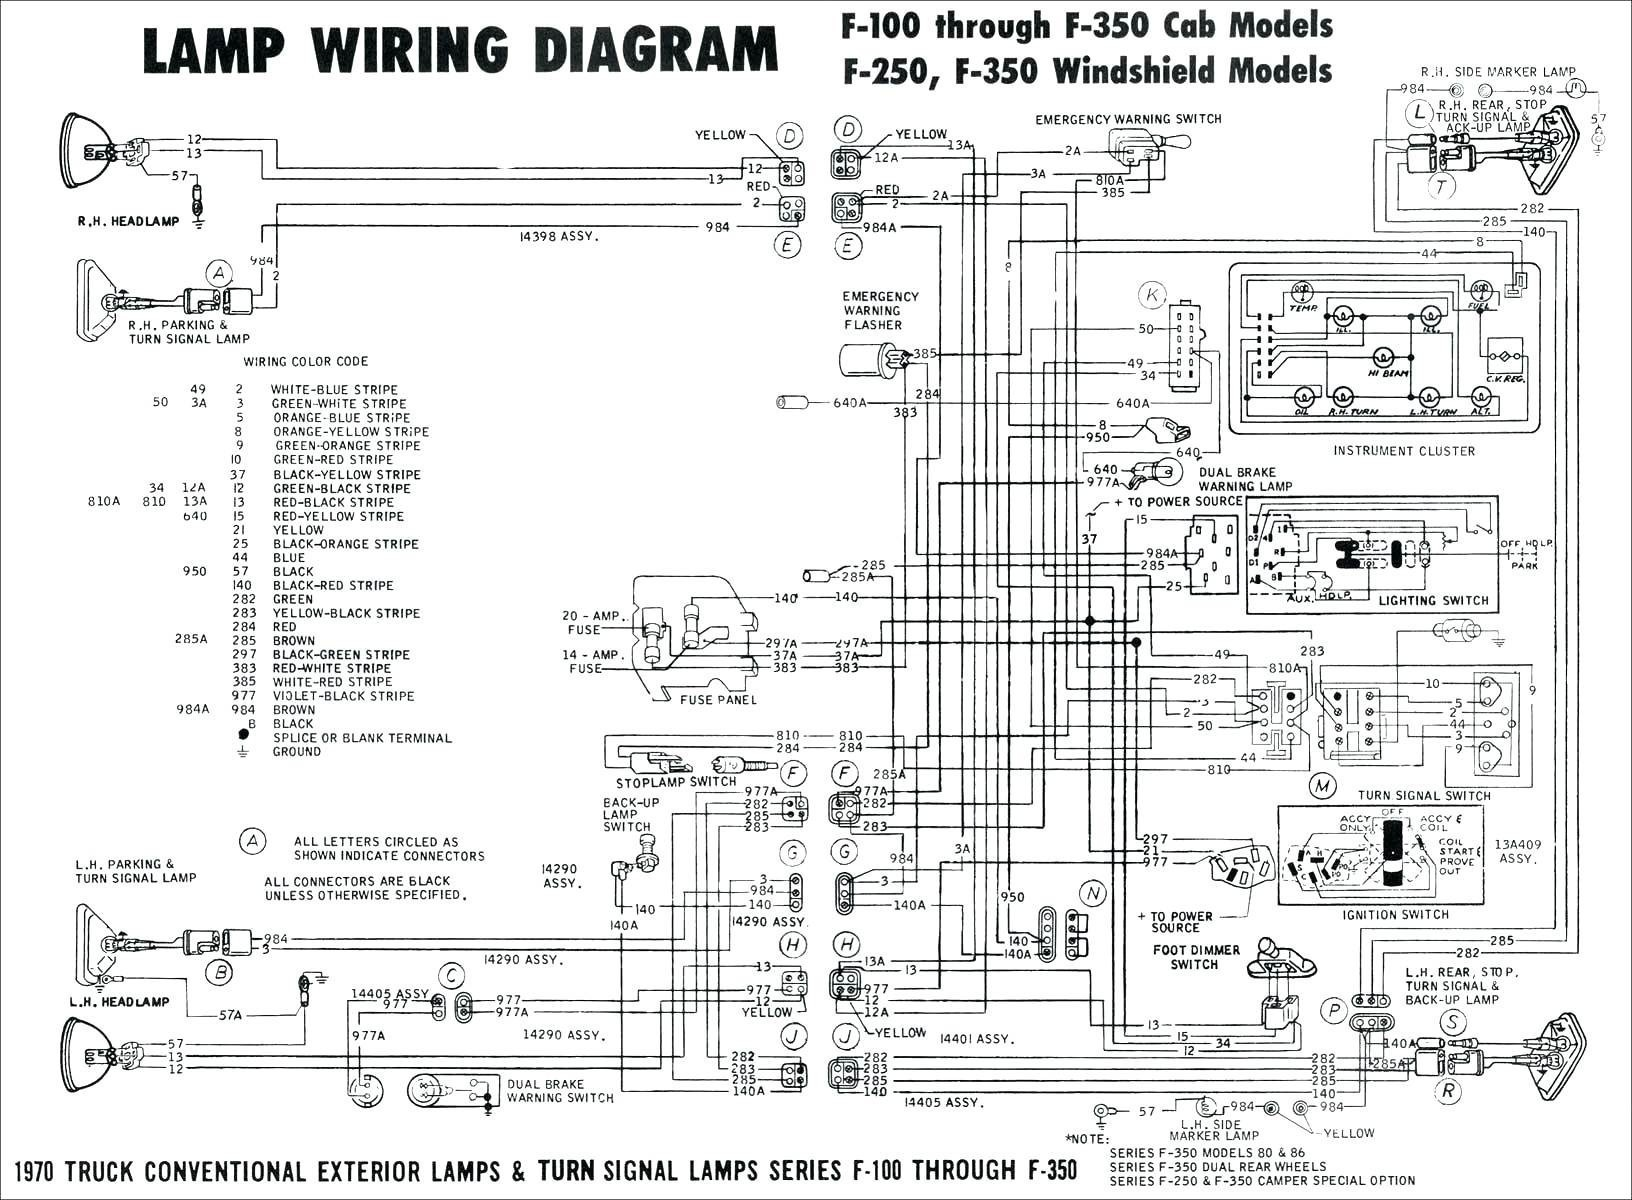 1998 jeep wrangler headlight wiring diagram of fold mountains formation 2006 free